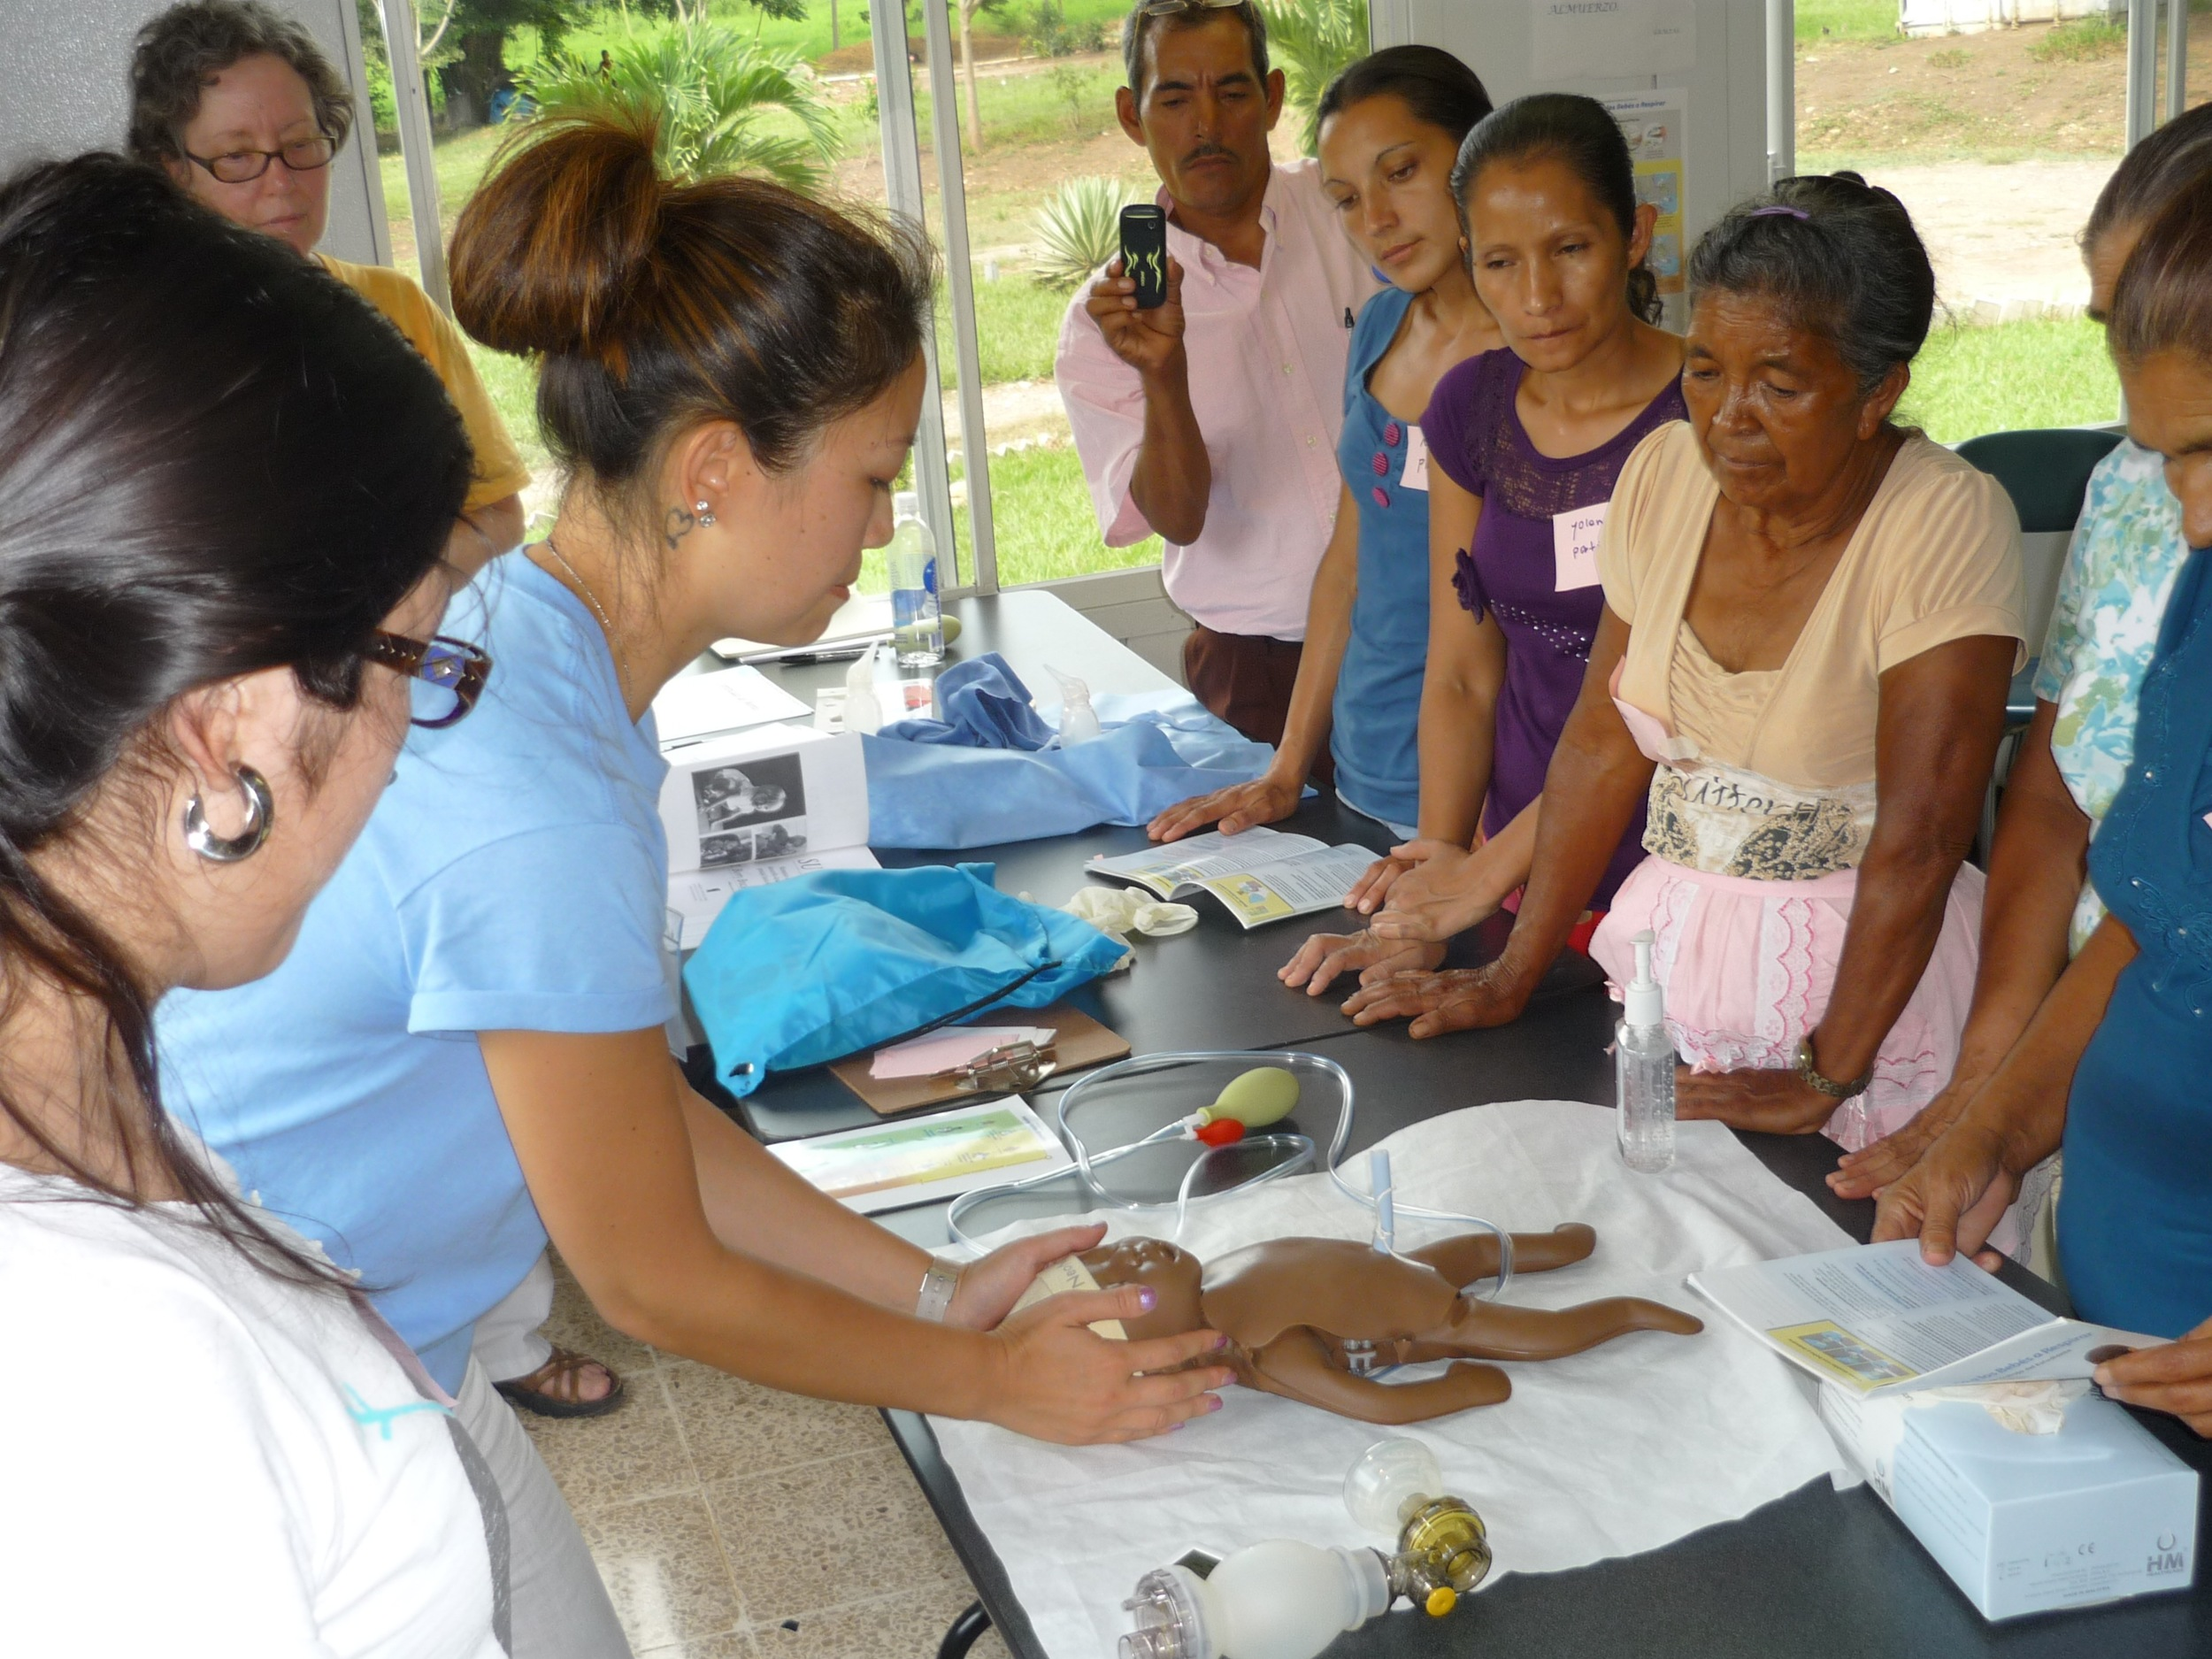 Members of the brigade from Allentown, PA conduct training for midwives from surrounding villages.